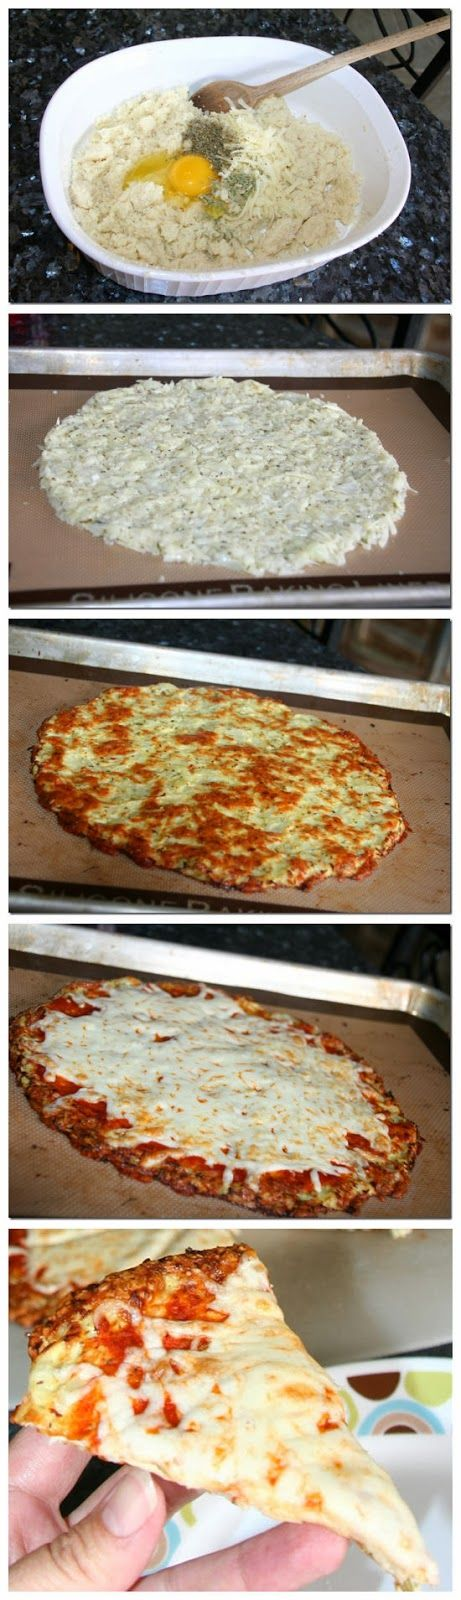 Cauliflower Crust Pizza! I can eat all the pizza I want without get fat!! Yes!!!!!!!